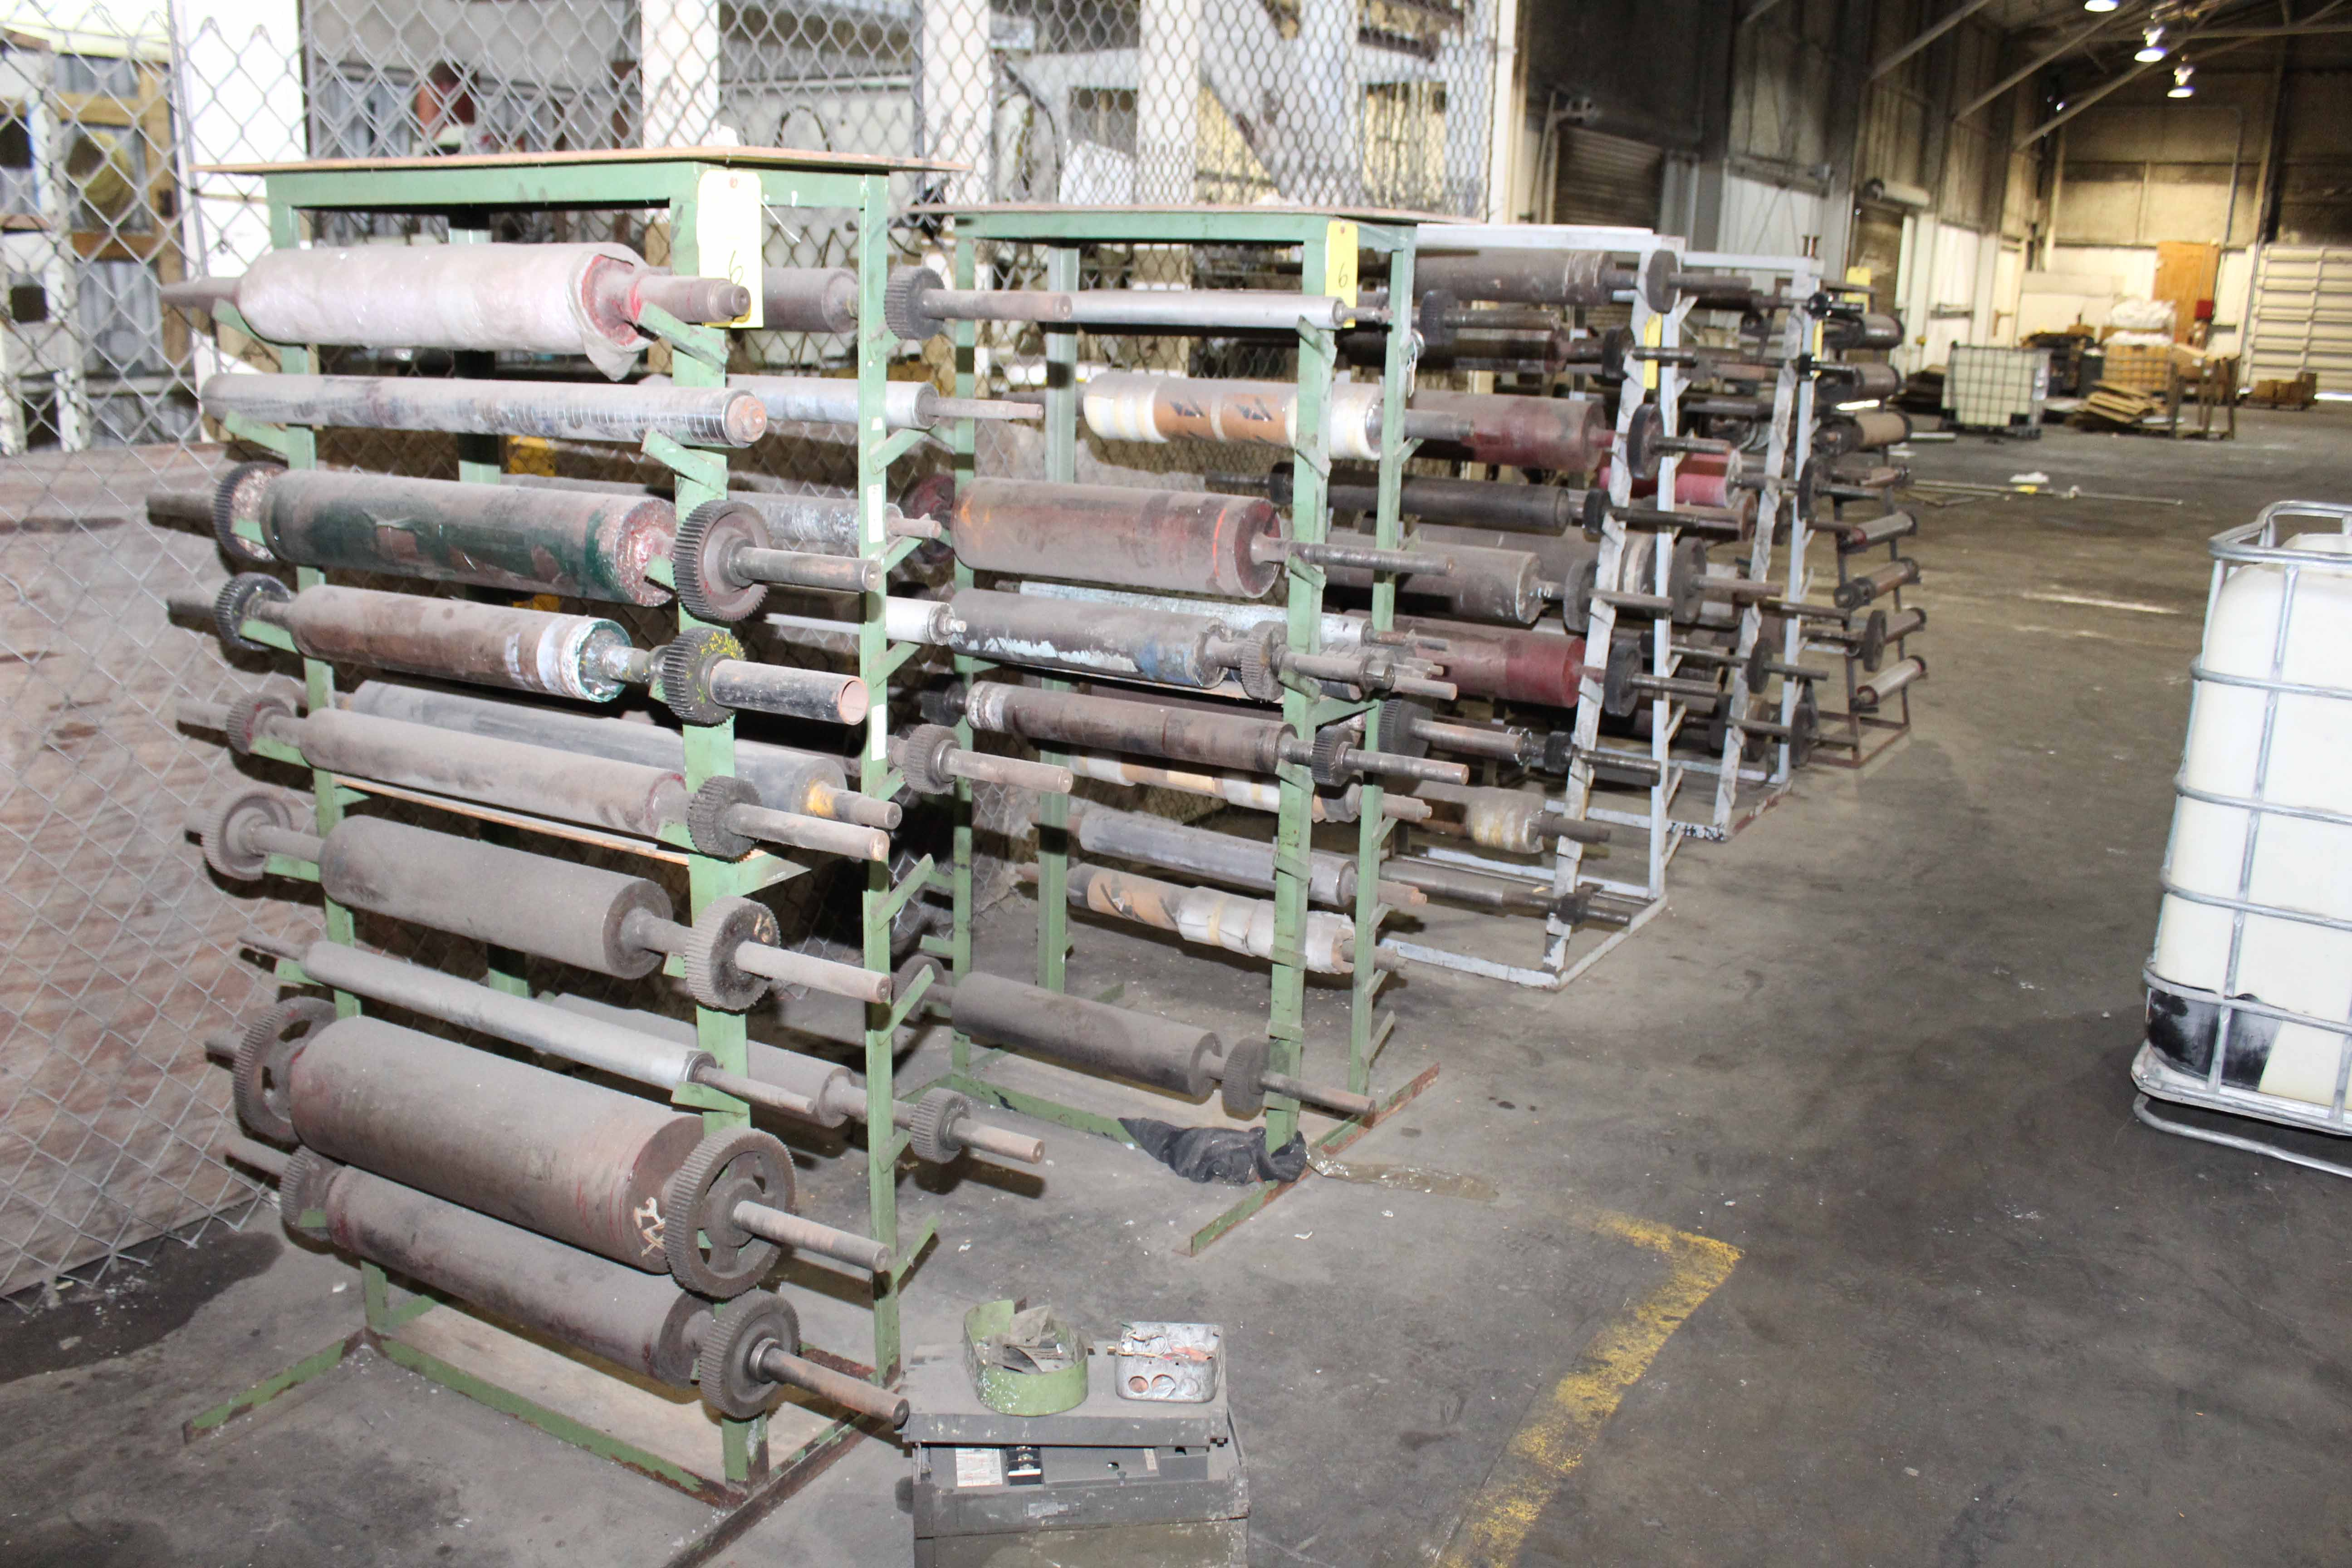 Lot 6 - LOT OF (8) A-FRAME RACKS CONTAINING RUBBER AND METAL ROLLS, spare rolls for blown film/printing